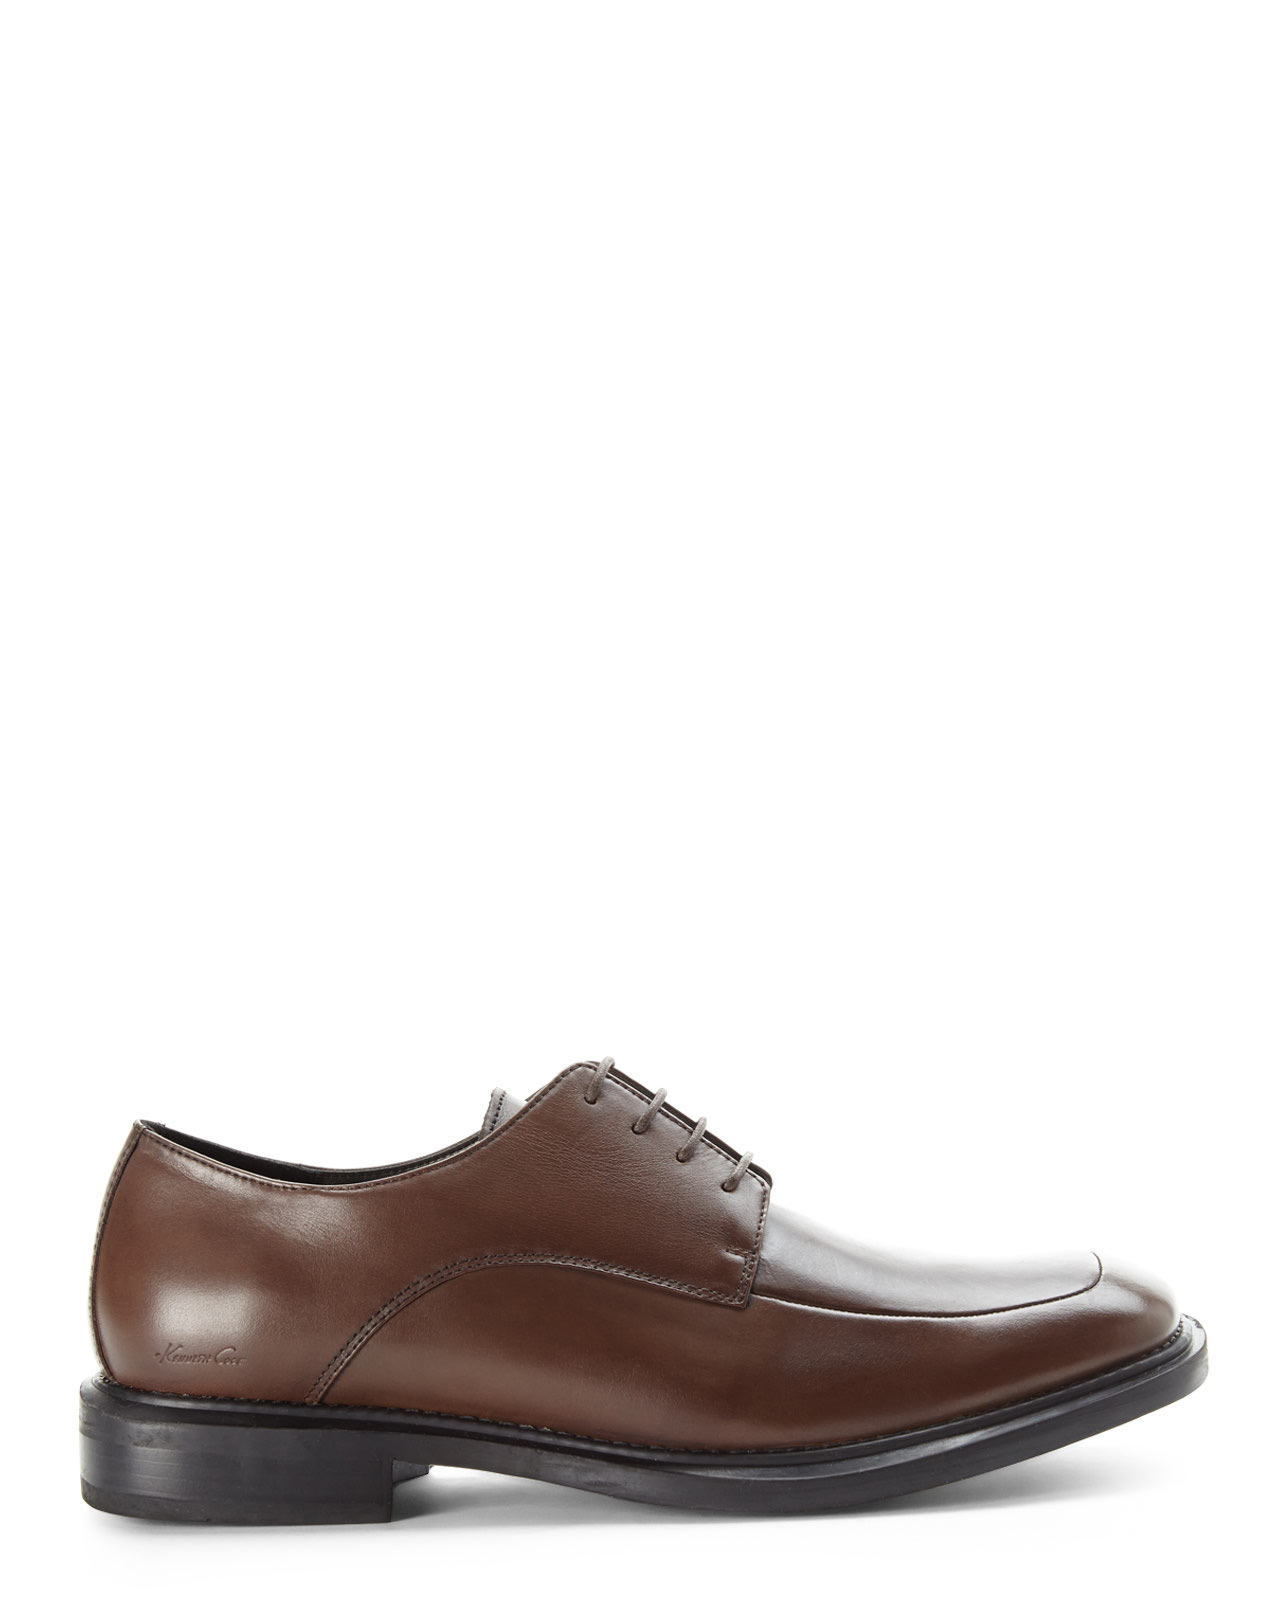 Kenneth cole Brown Merge Oxfords in Brown for Men